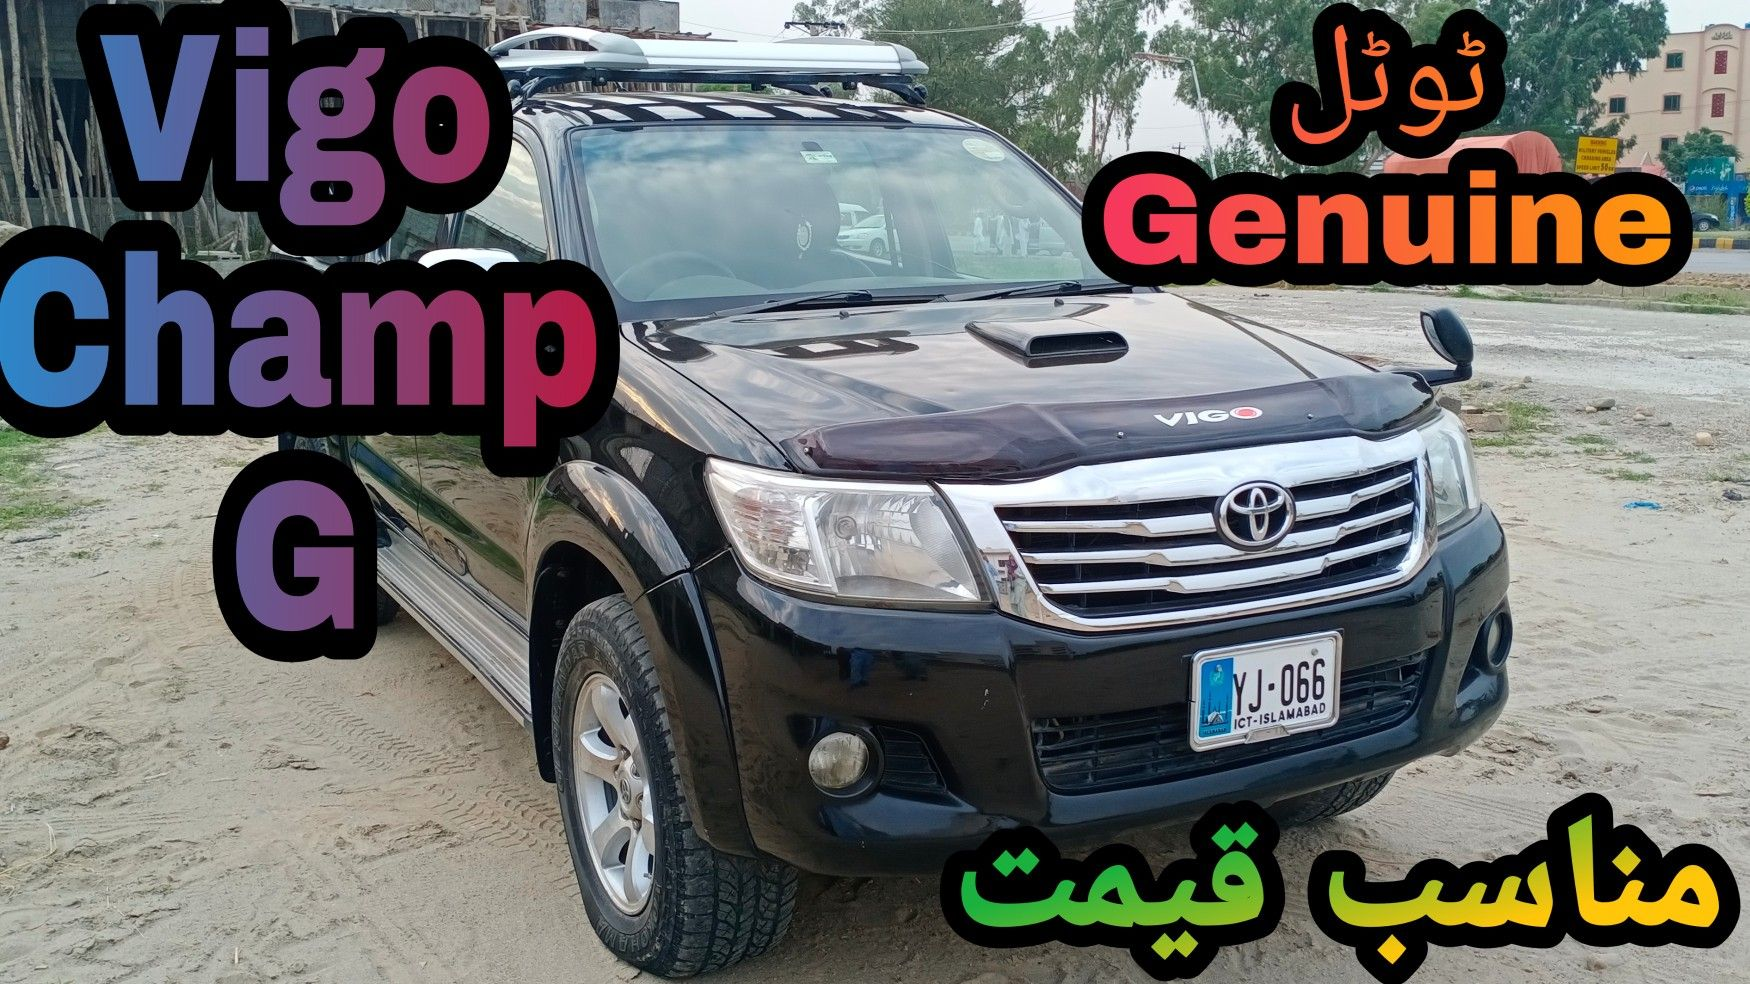 Toyota Hilux Vigo Champ G 4x4 2013 0verview Price For Sale Pakistan In 2020 Toyota Hilux Vigo Toyota